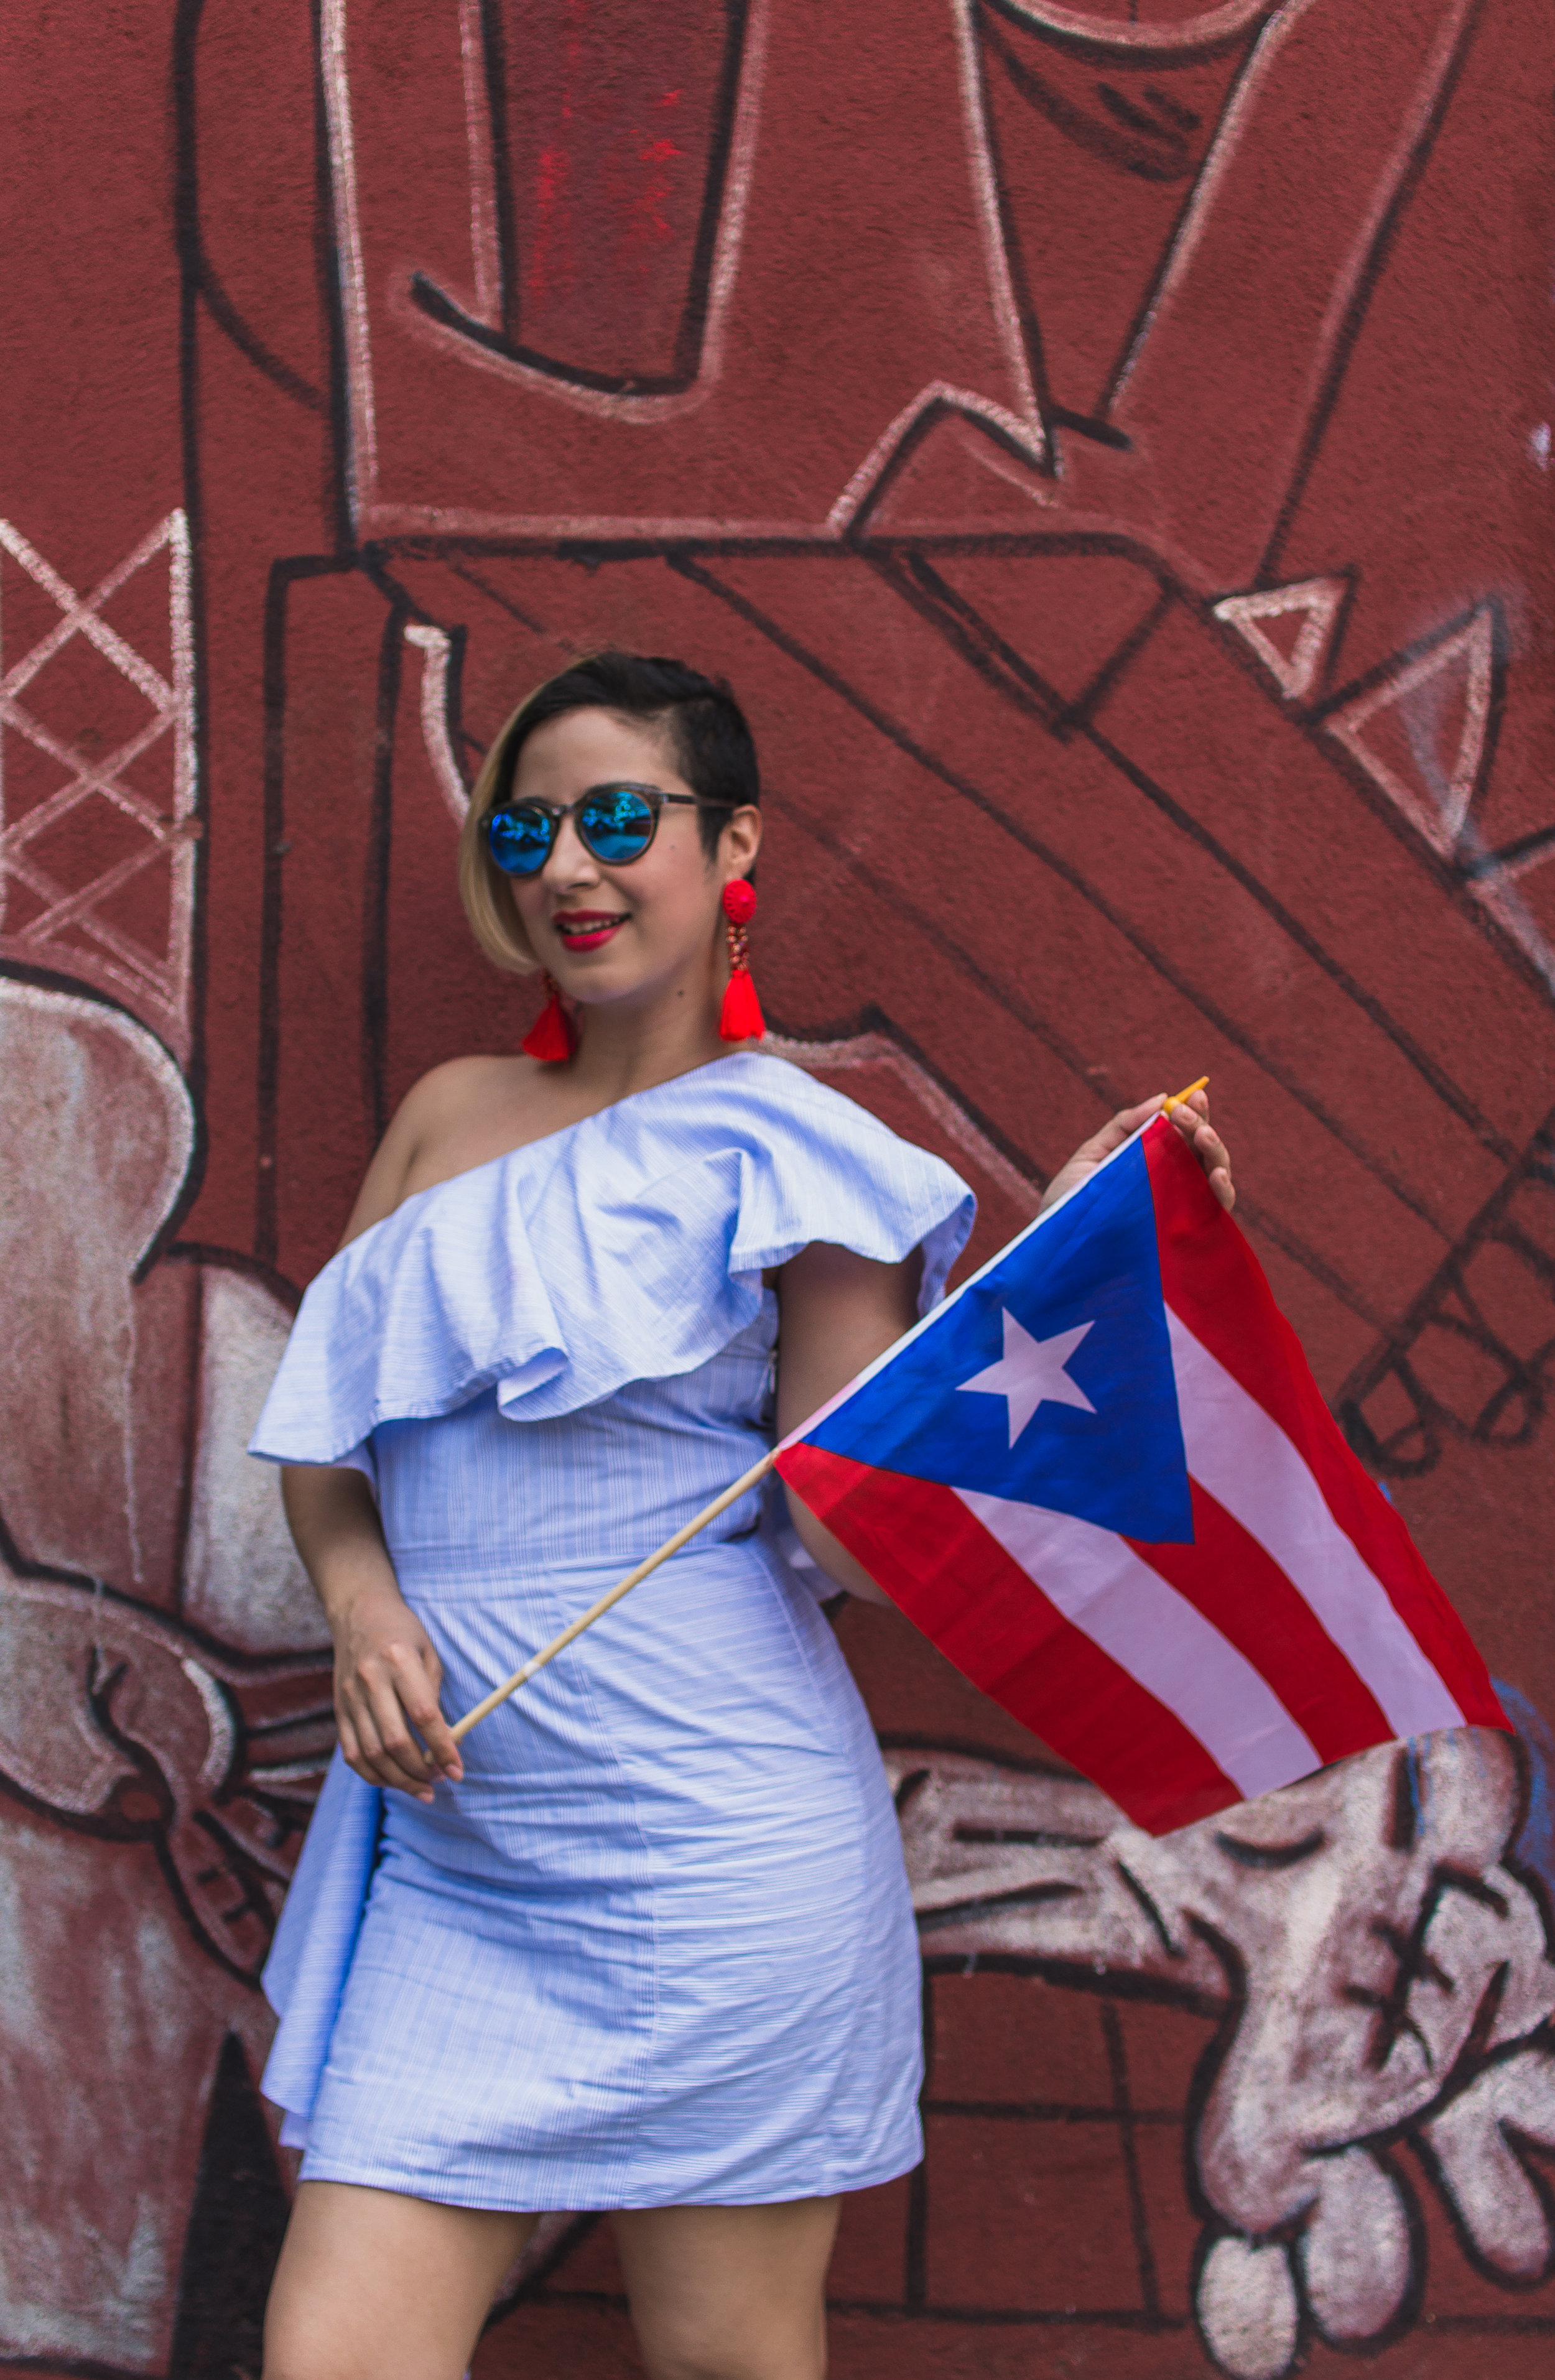 "For us  Nu yoricans, the 116th Street Festival officially sets off the Summer! It is held the second Saturday in June, and gets us all charged up for the Puerto Rican day Parade that takes place the next day! This celebration of Puerto Rican culture is not just limited to Puerto Ricans. People from all Latino and non Latino cultures gather here for a day of Music, authentic Puerto Rican cuisine, art and shopping! Spanning 20+ blocks, this grand Uptown ""Block Party"" has been going down since 1985 and is the biggest Latin Festival in the North East. You can only imagine all the walking one must do! My favorite are the two huge musical stages that are assembled on 112th street and 106th street with celebrity appearances and performances from some of the best Puerto Rican talent from old school to new school. There's a lot to do and see in between so you want to make sure your attire is adequate for roaming around on foot especially in the hot weather!   Street Festival wear has to be easy and comfortable so you are able to move around with ease. My look for the Festival this year was a playful take on the traditional Bomba y Plena dresses worn by the women who dance to these two classic musical styles from Puerto Rico. BOMBA attire is considered to be more conservative than PLENA , and this VIVA AVIVA dress is a little of both. It's definitely not conservative, BUT, the sleeveless one shoulder design is similar to the tops you see on a PLENA dress and the whimsy side ruffles mimic the ruffles in the skirts on both BOMBA and PLENA skirts. The skirts are a big part of the dances and are swished around just like the women in the Sugar Plantations used to do, which is where BOMBA originated in the 17th century. PLENA music was developed from BOMBA and was introduced in the beginning of the 20th century. I didn't use my side ruffles to dance, but I did use them to strike a pose or two! I wanted to wear Red, White and Blue to honor the colors of the Flag so the dress represents the Blue. It's not the exact Blue of the Flag but it's the kind of Blue you want to wear on an 80 degree day; light and fresh! I didn't want to be too literal, but I still wanted to represent! Red statement earrings and simple white sneakers complete the trifecta of colors that make up our beautiful flag.   I always look forward to ""Puerto Rican weekend"" in NYC. Puerto Rican Pride is contagious and you can't help but feel it in the air that weekend. The cheerful energy of the people, the Salsa you hear blasting on every street corner, the colors of the Flag freely dancing in the wind, the Savory scents of Lechon {Roast Pork} and Puerto Rican fritter dishes like Alcapurrias and Bacalaitos in the air, the chanting of the people screaming ""Yo soy BORICUA, pa' que tu lo sepas!""  all contribute to the Magic of the 116th Festival.   A huge thank you to LEAH & CAV for coming all the way from Queens to spend the afternoon in EL BARRIO with me! They were so much fun to work with and made me feel super comfortable! Remember Fashionistas! Dress to the beat of your own drum, even if it goes against what everyone else is doing!  With Style & Pizazz,  YAZ  Photographer: Leah Santos (Instagram @Theneolang  Videographer: Cav (Instagram @dreamers.revenge)      Dress: VIVA AVIVA - Renttherunway.com  Earrings & Sneakers: Amazon.com"